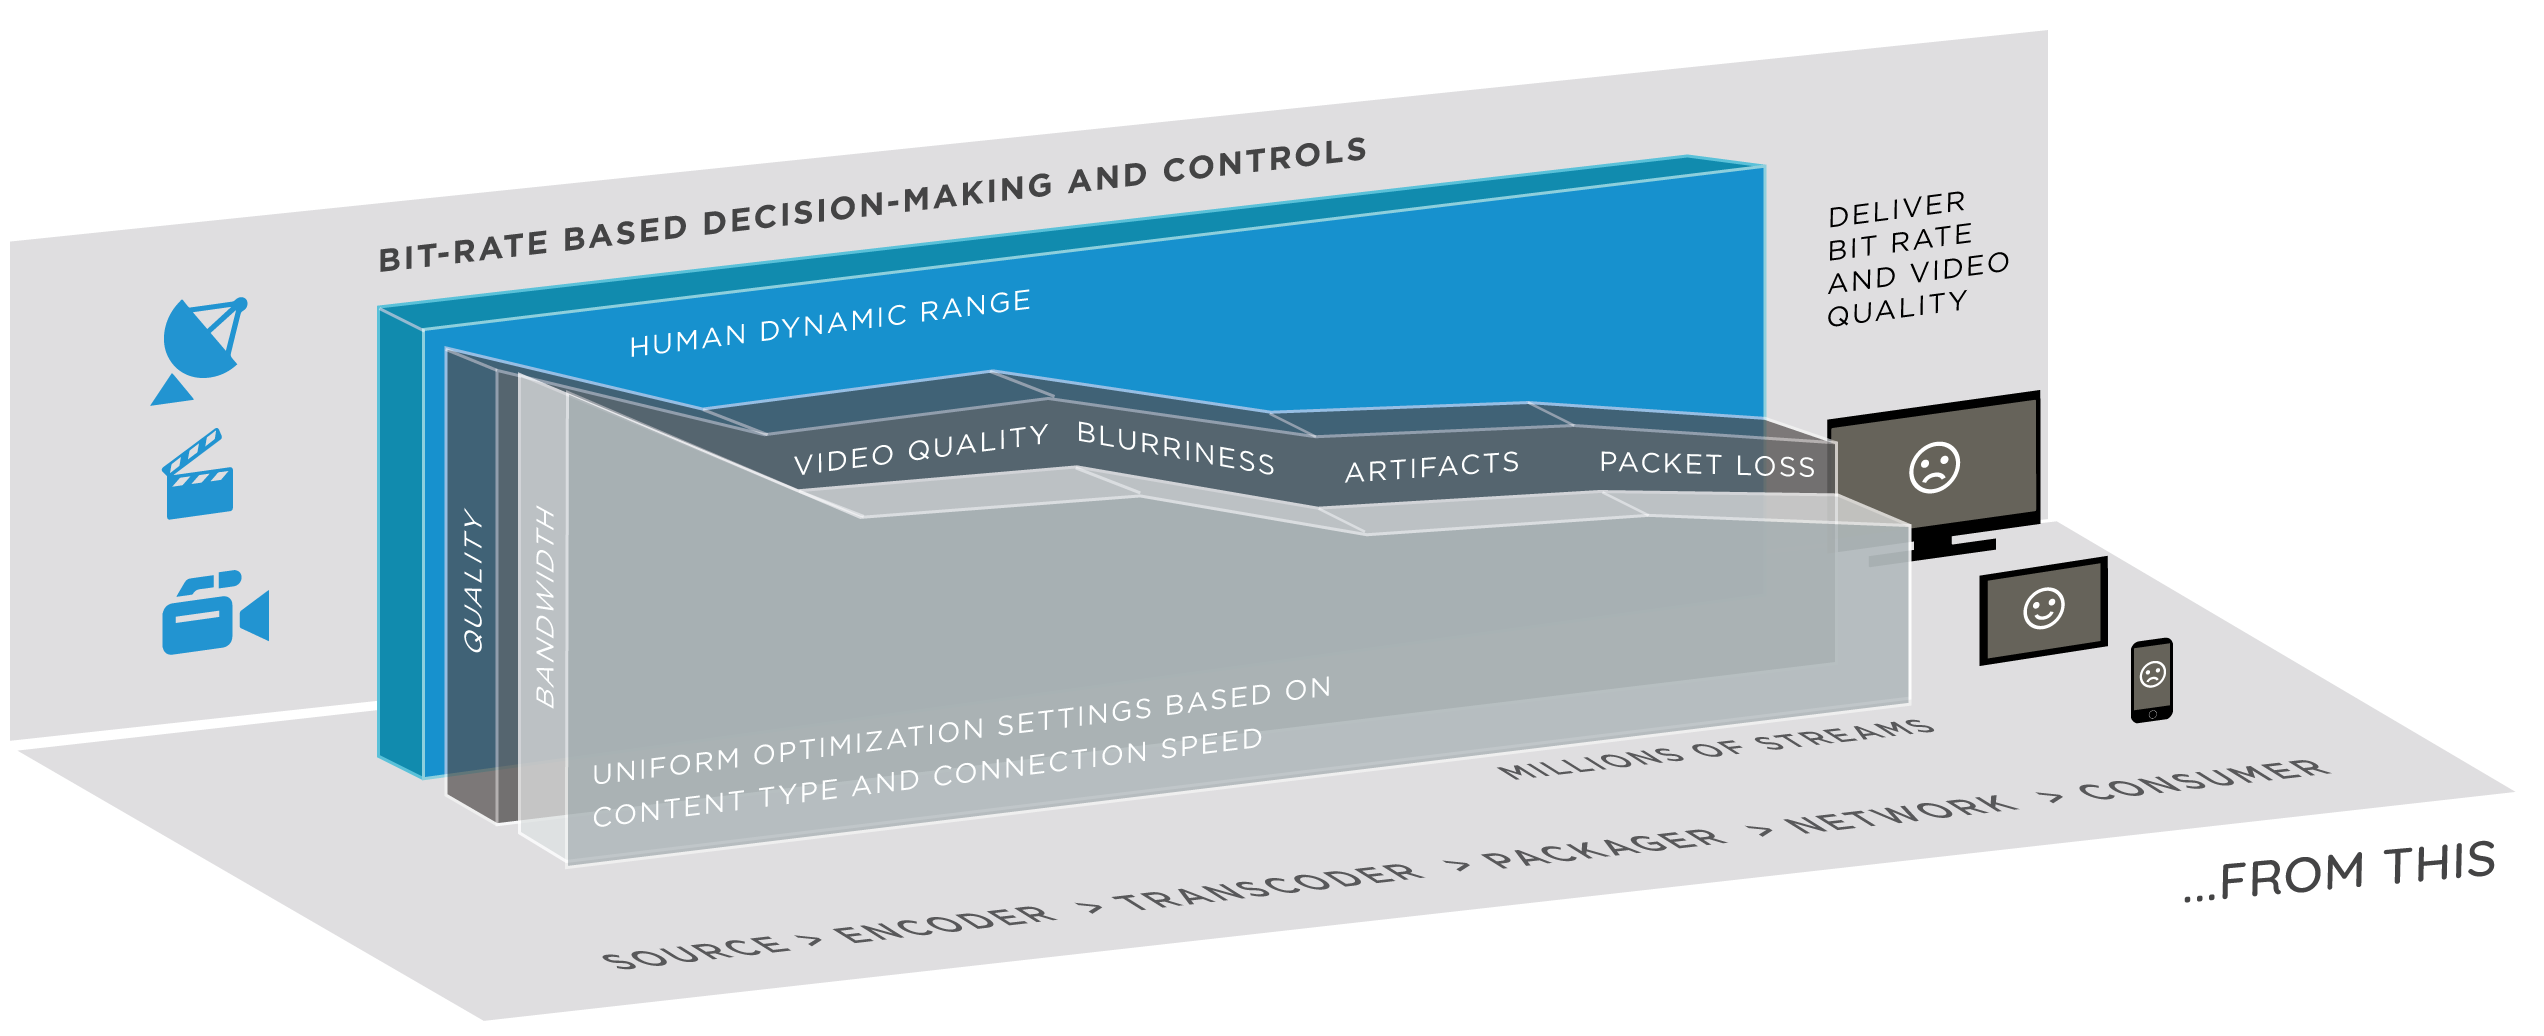 Bit-rate based decision-making and controls model with the consumer at the end